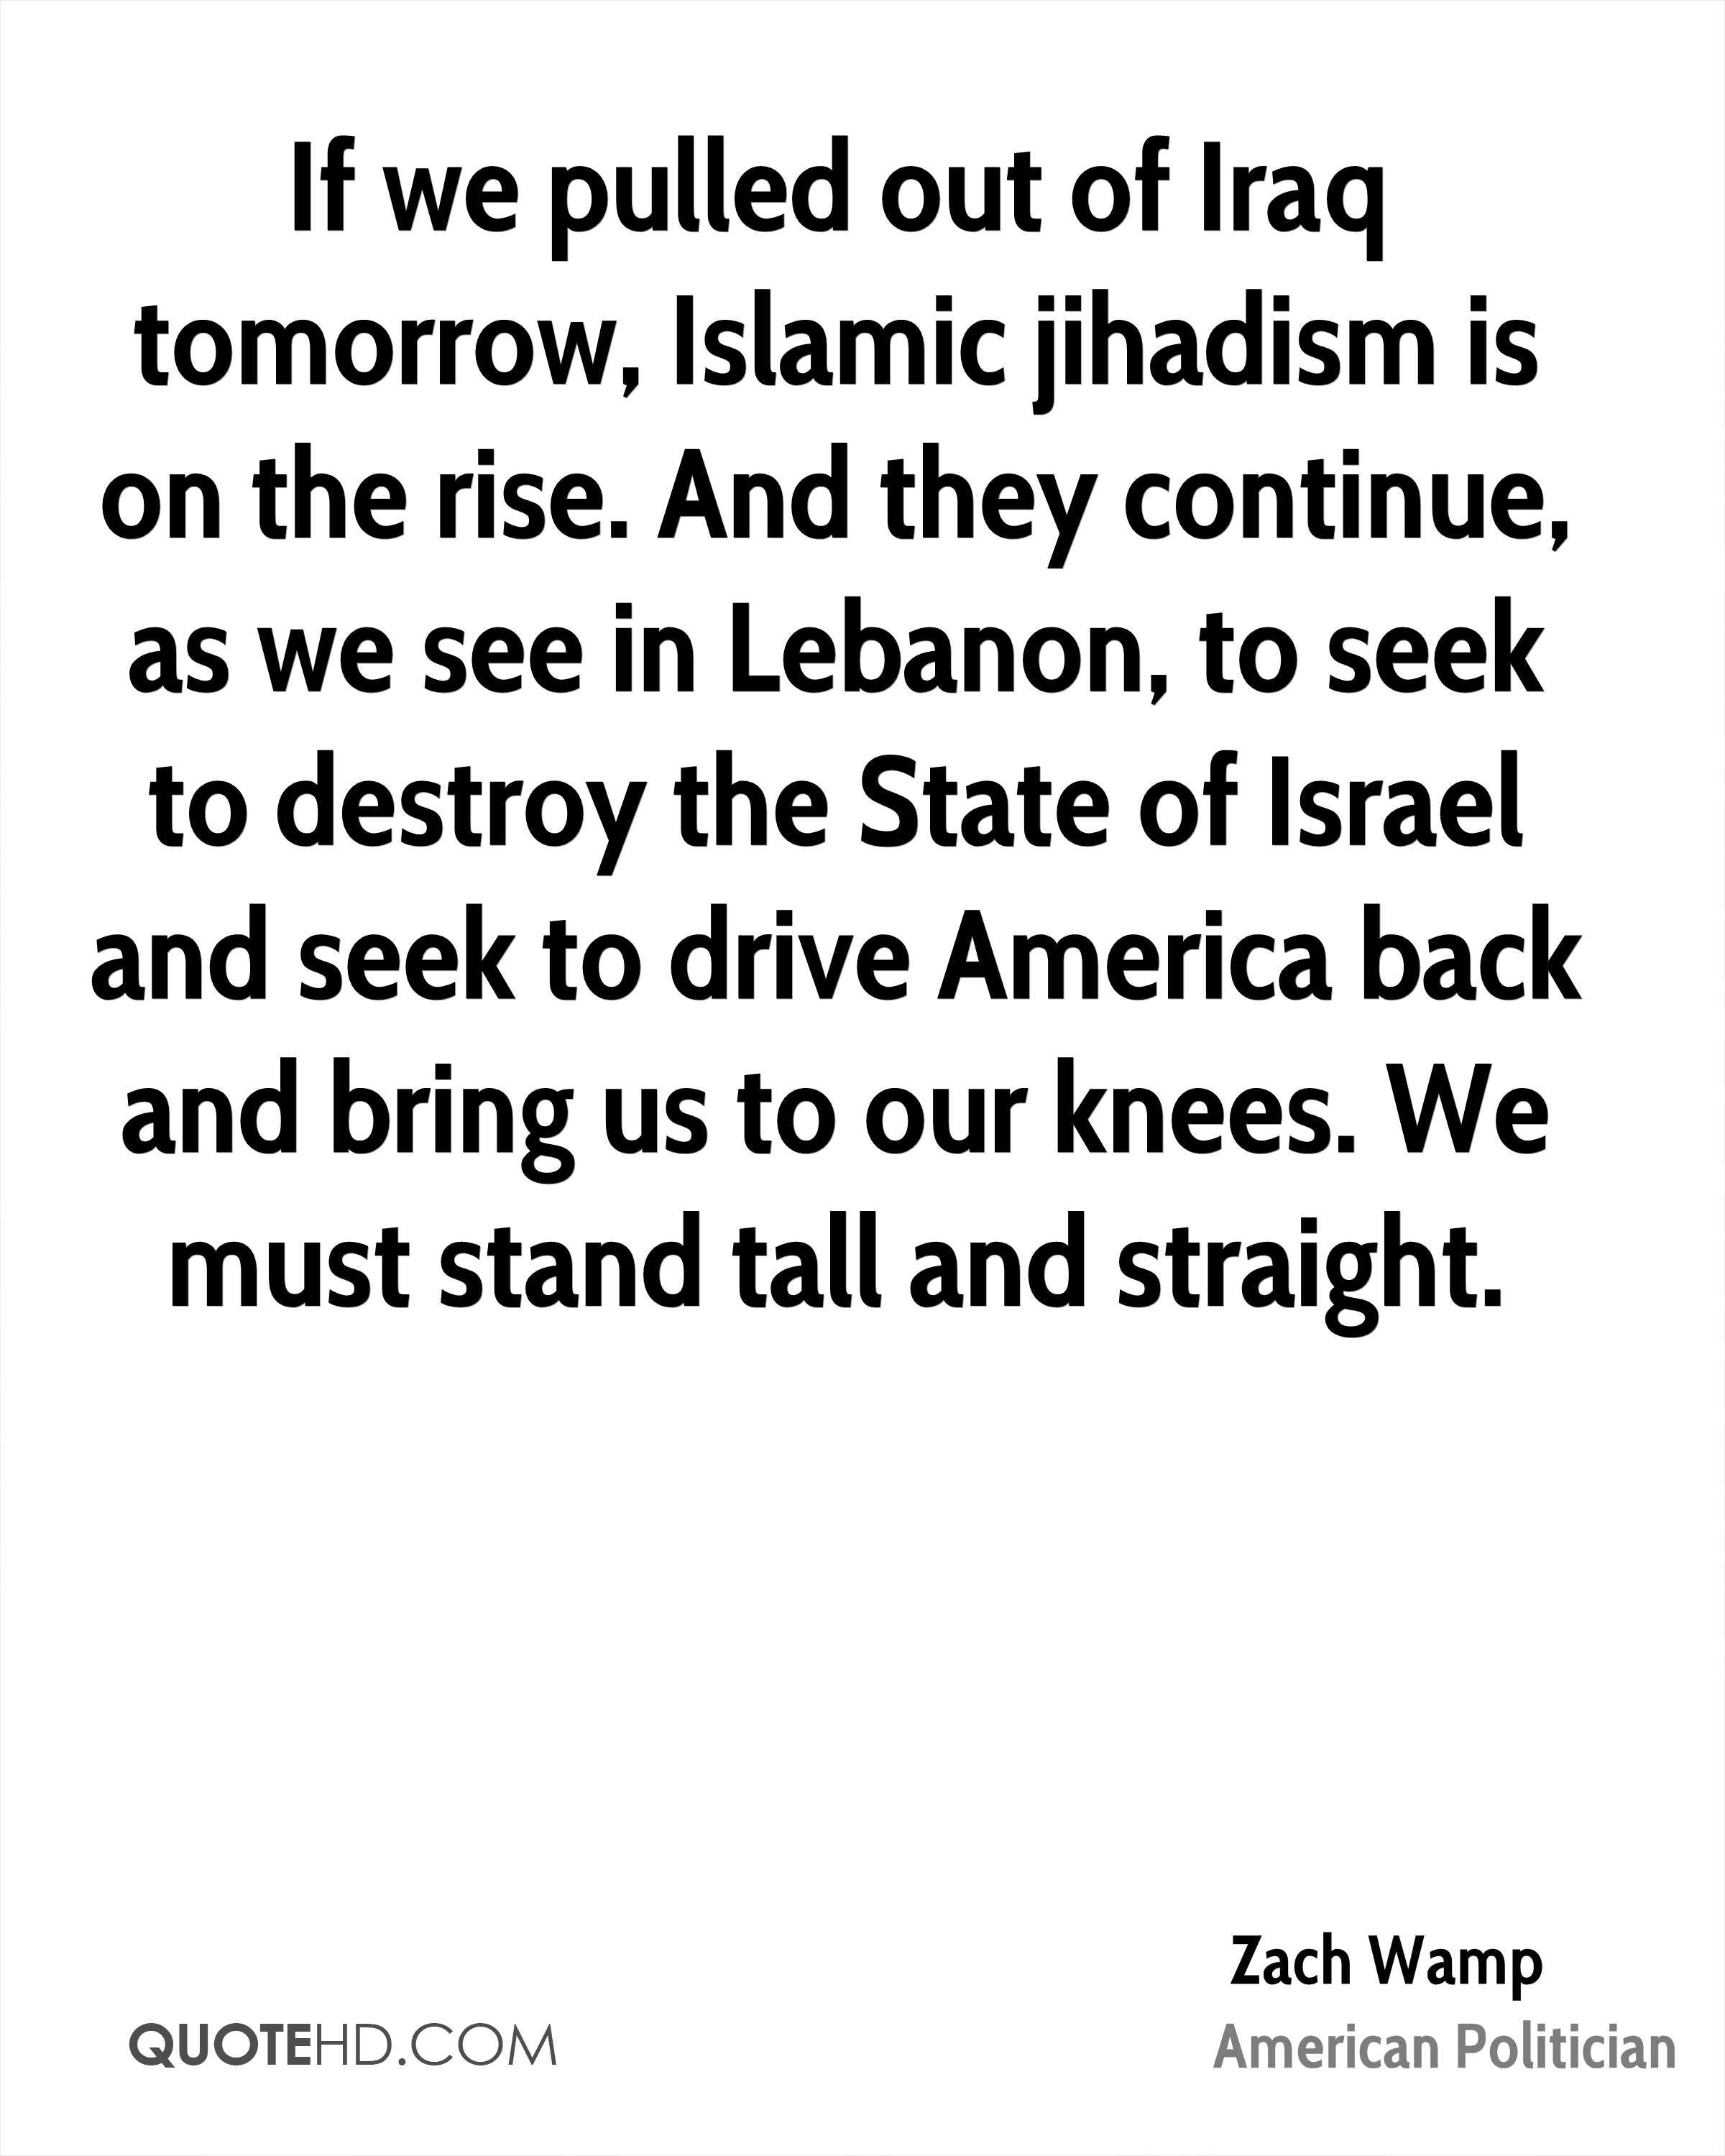 If we pulled out of Iraq tomorrow, Islamic jihadism is on the rise. And they continue, as we see in Lebanon, to seek to destroy the State of Israel and seek to drive America back and bring us to our knees. We must stand tall and straight.